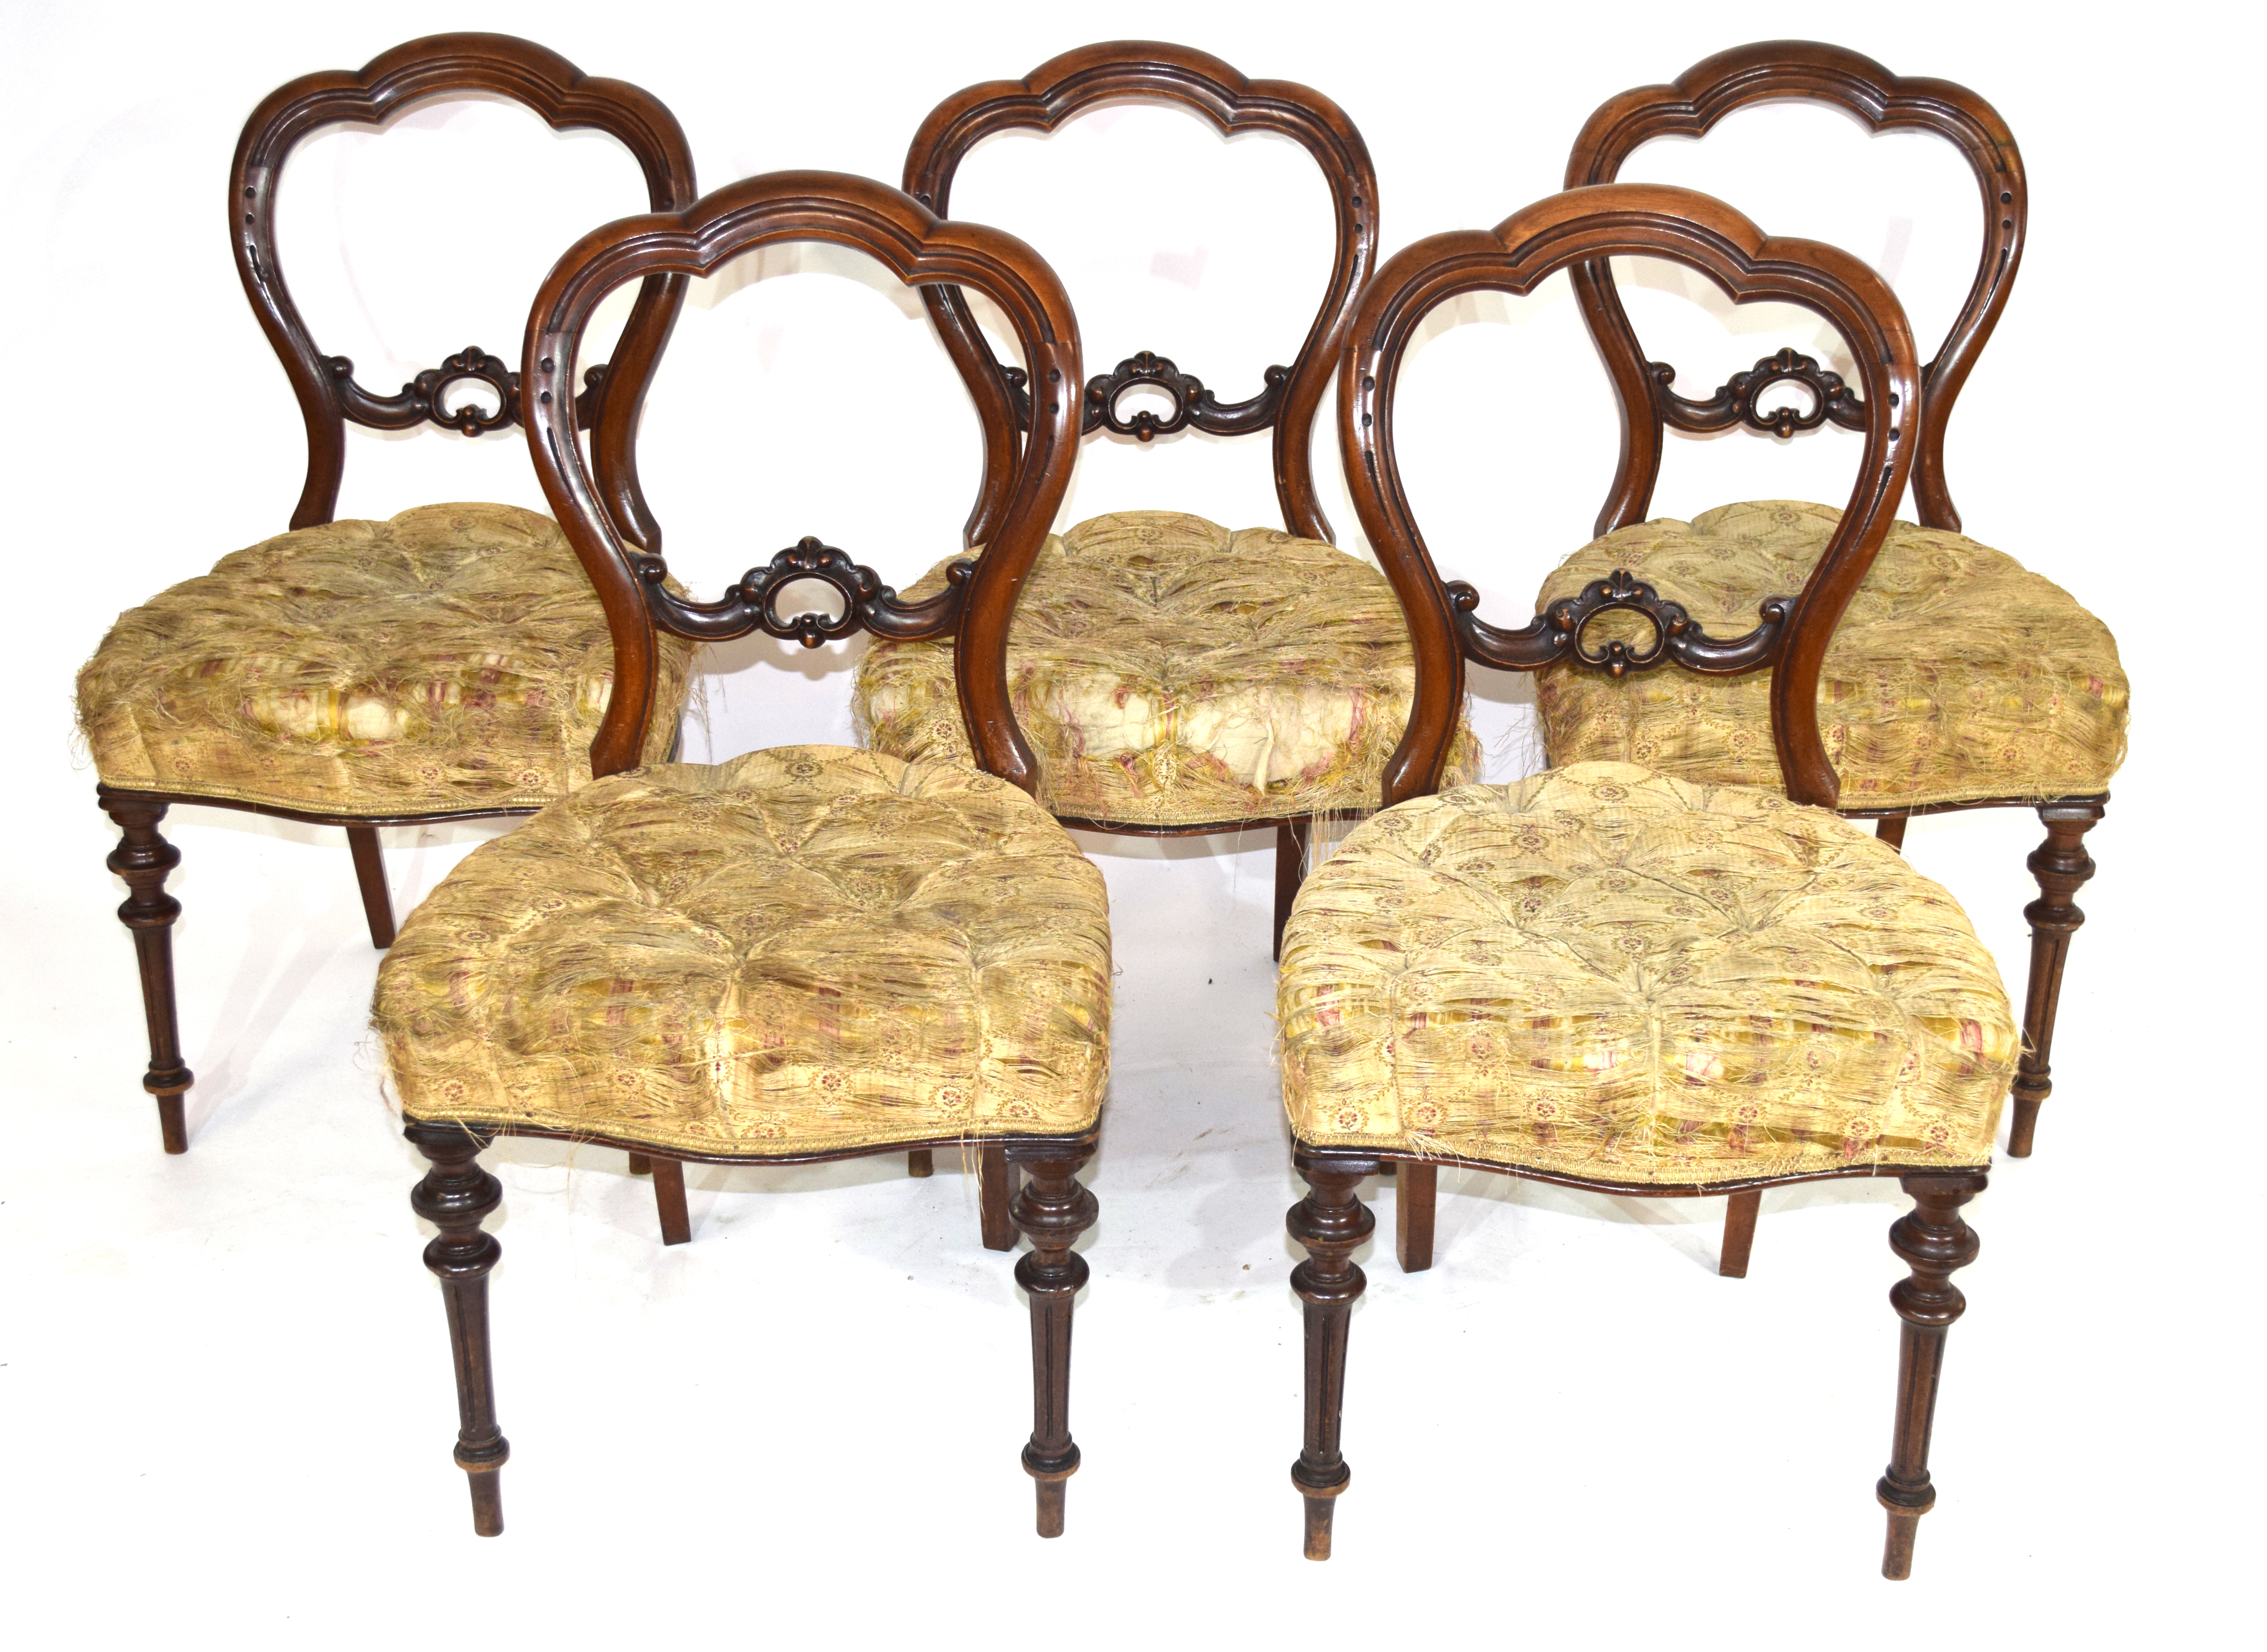 Set of six Victorian mahogany balloon back dining chairs raised on turned legs fitted with button - Image 2 of 2